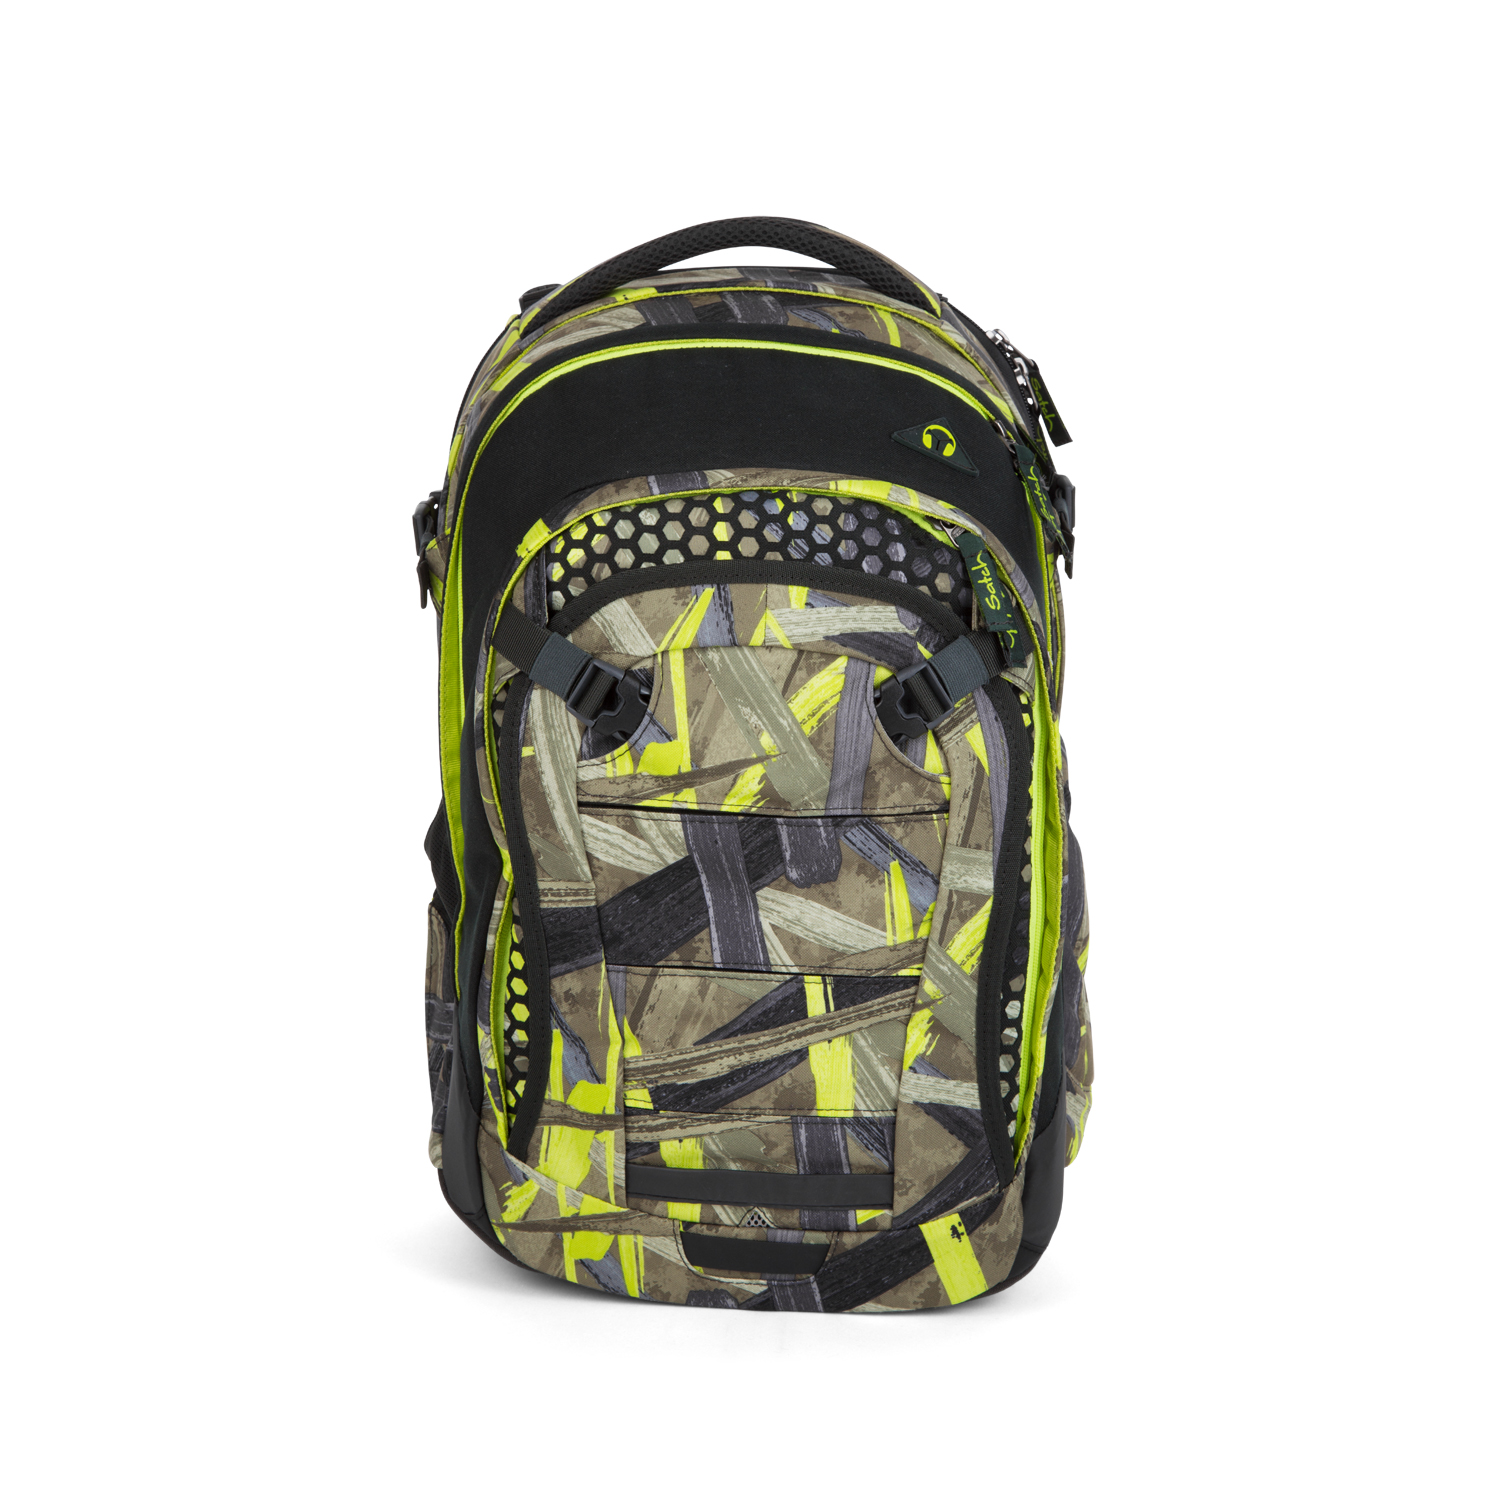 Satch Rucksack Match Jungle Lazer